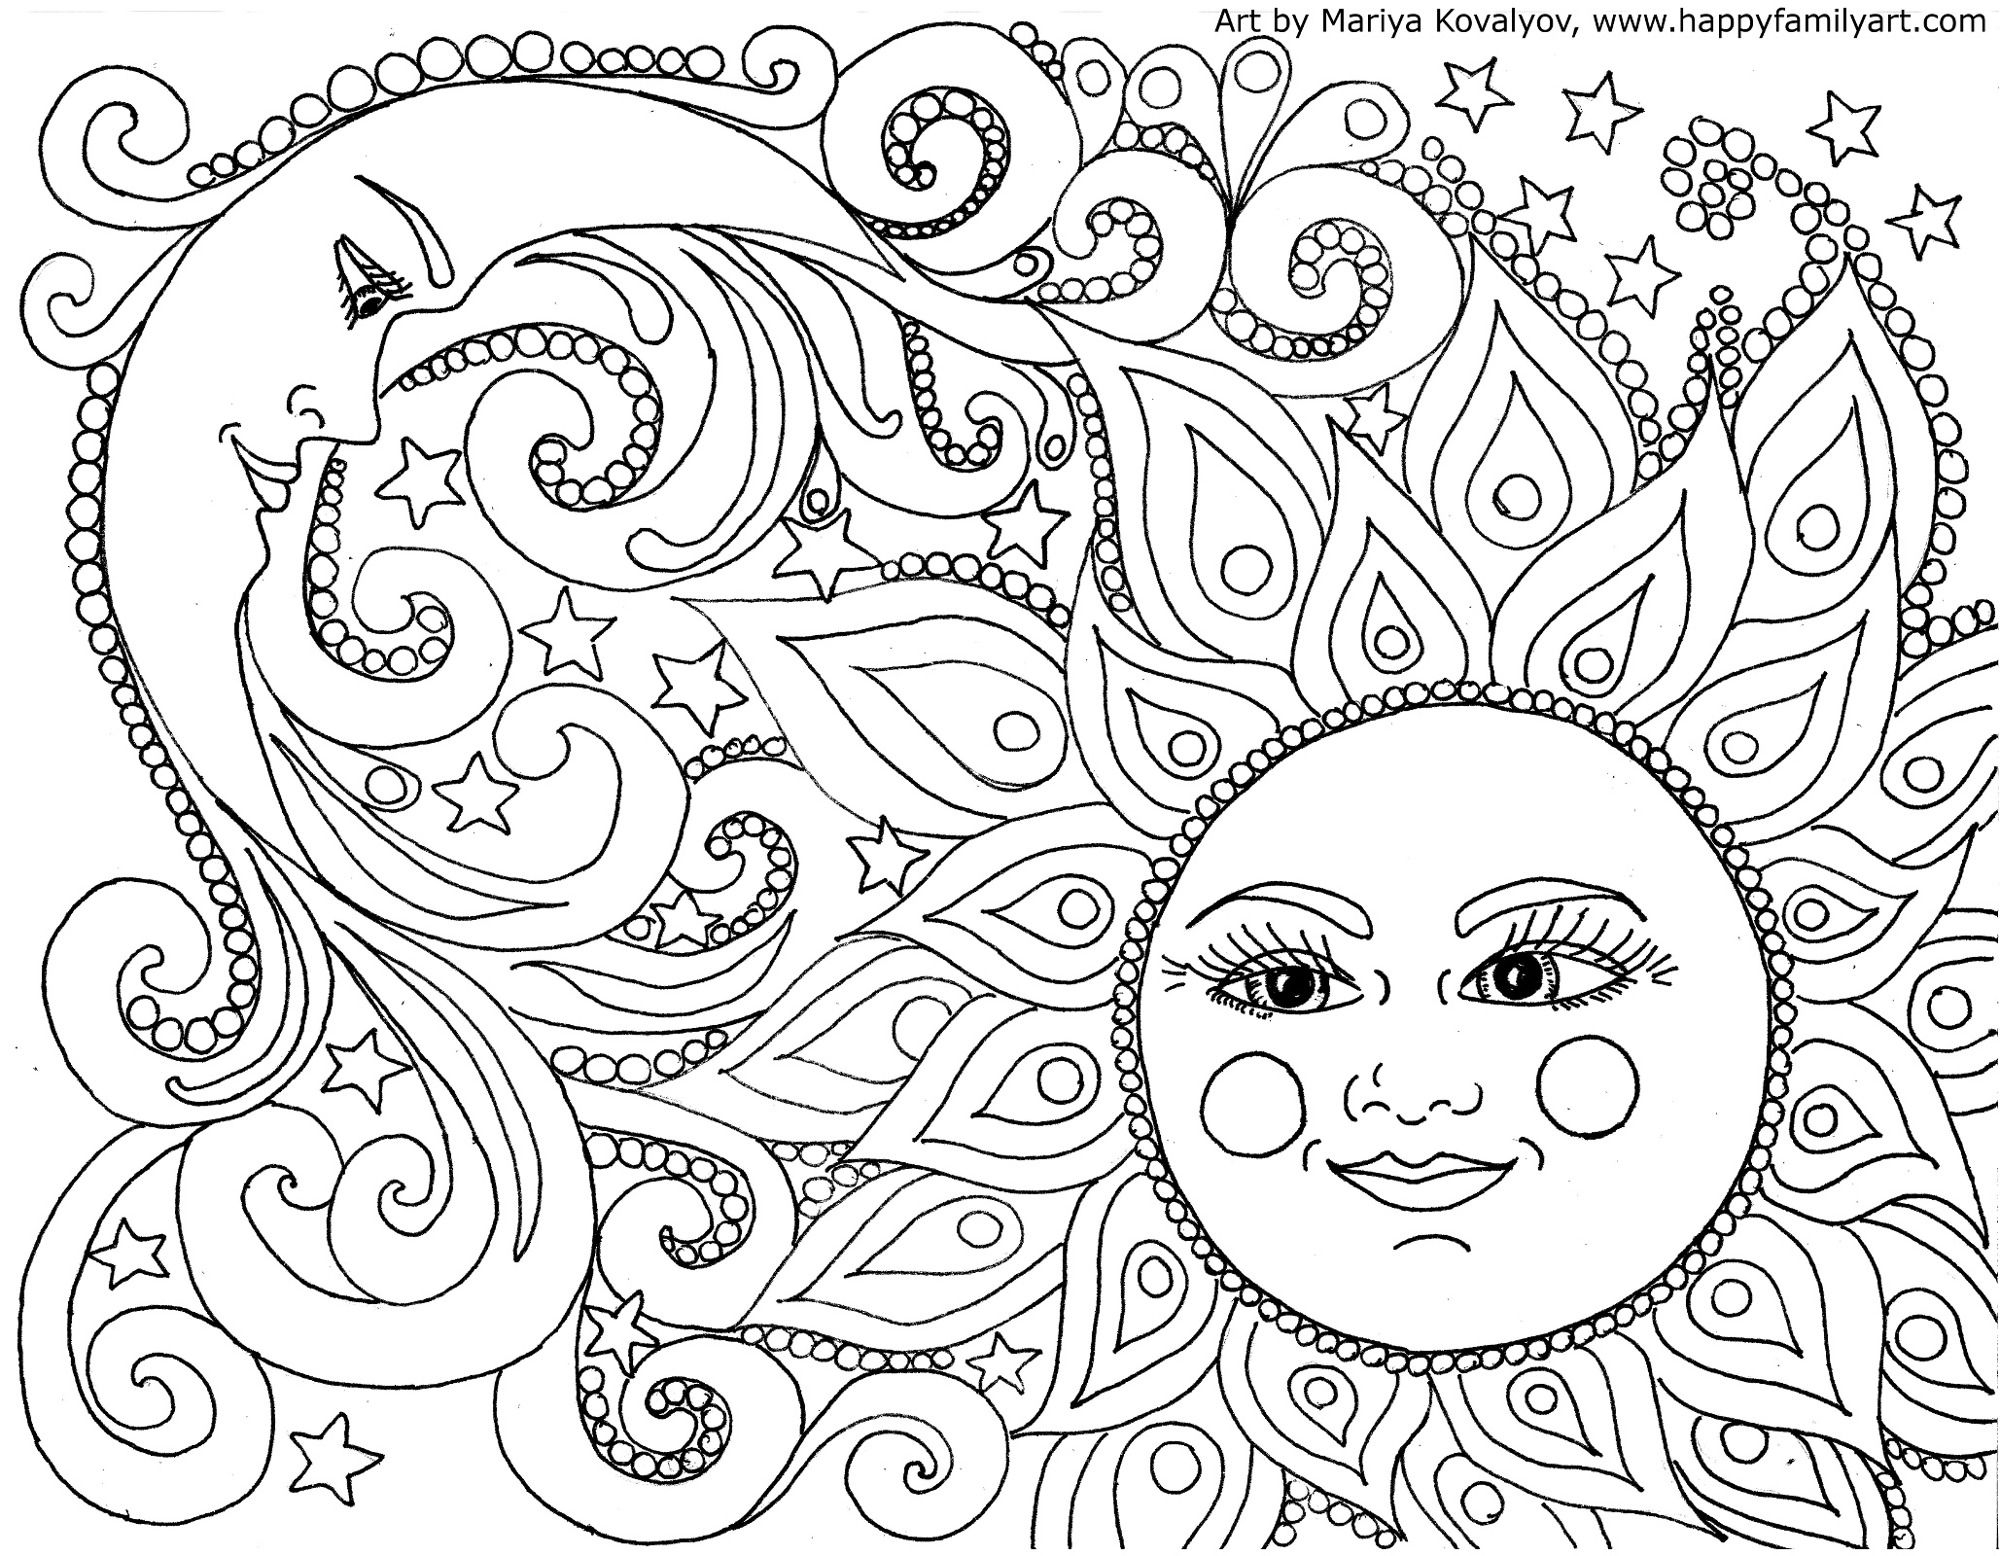 2000x1556 Best Of I Made Many Great Fun And Original Coloring Pages Color